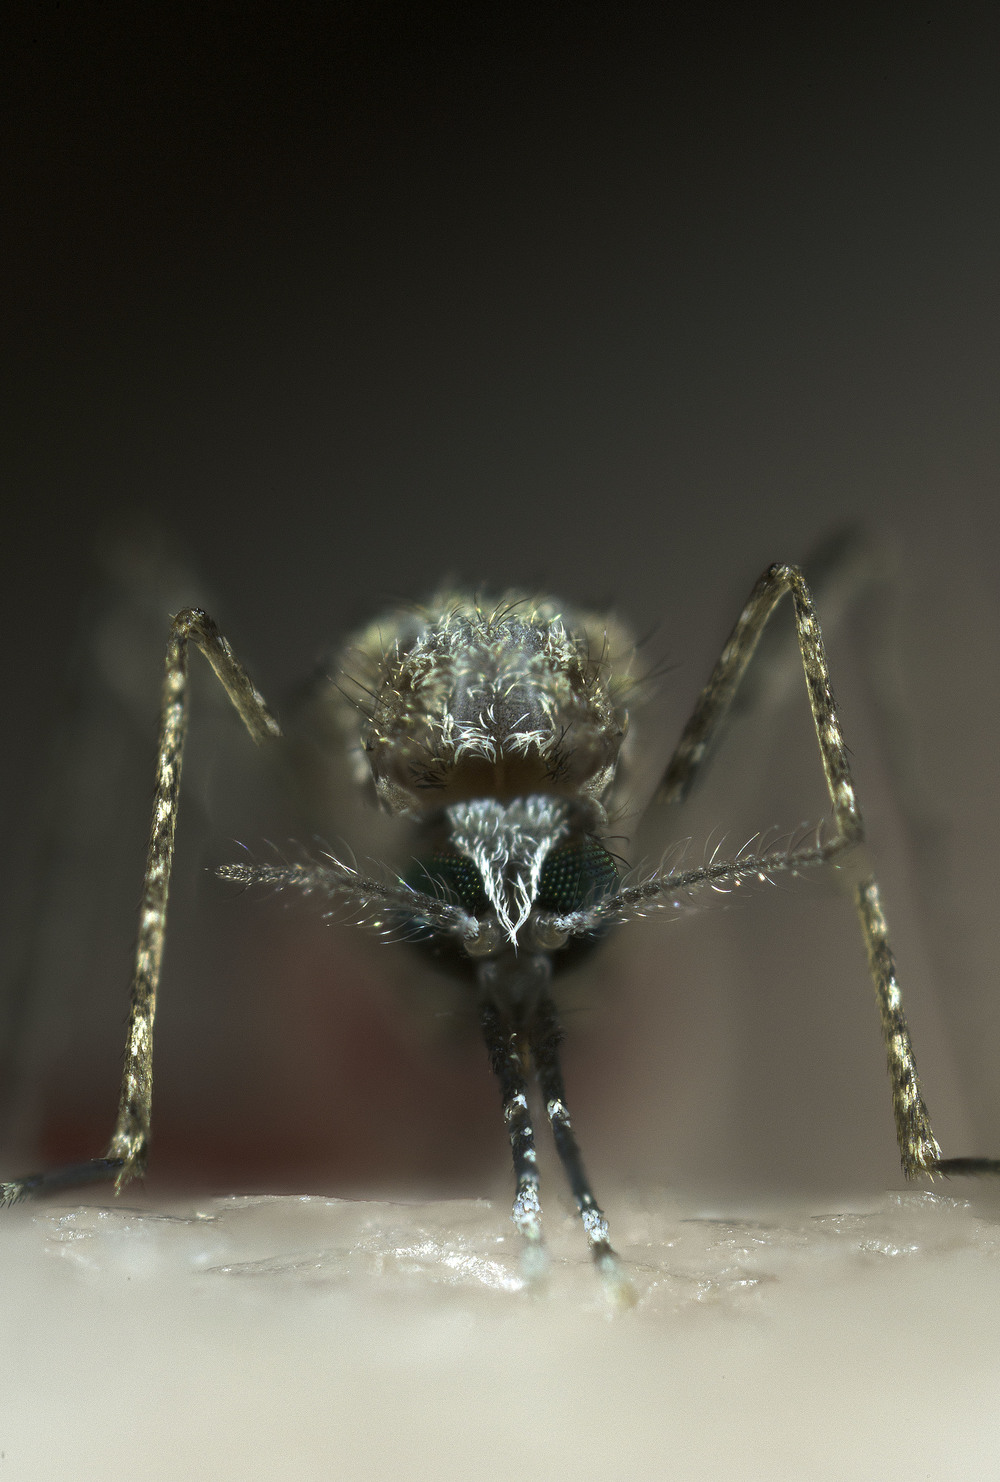 An. stephensii  vector for malaria (Credit: Sinclair Stammers)